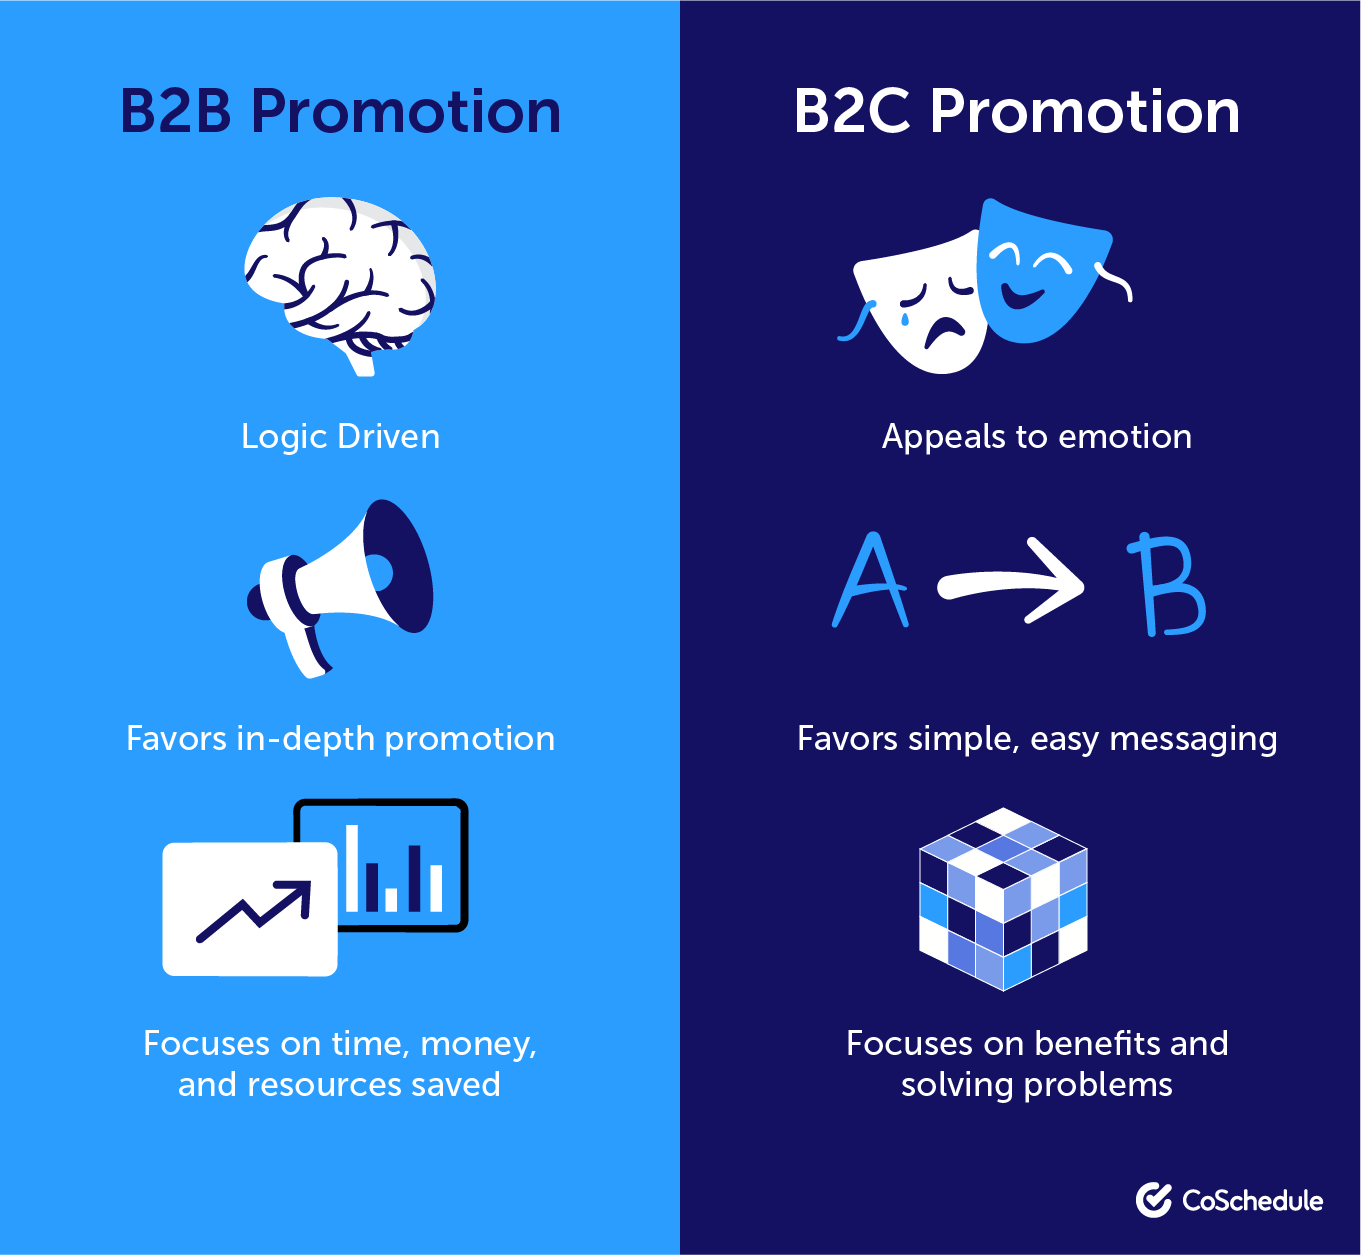 Ambientalista Malentendido Oxidado  B2B Marketing Campaign Examples and Templates to be More Successful |  Marketing campaign examples, B2b marketing campaign, Marketing campaigns